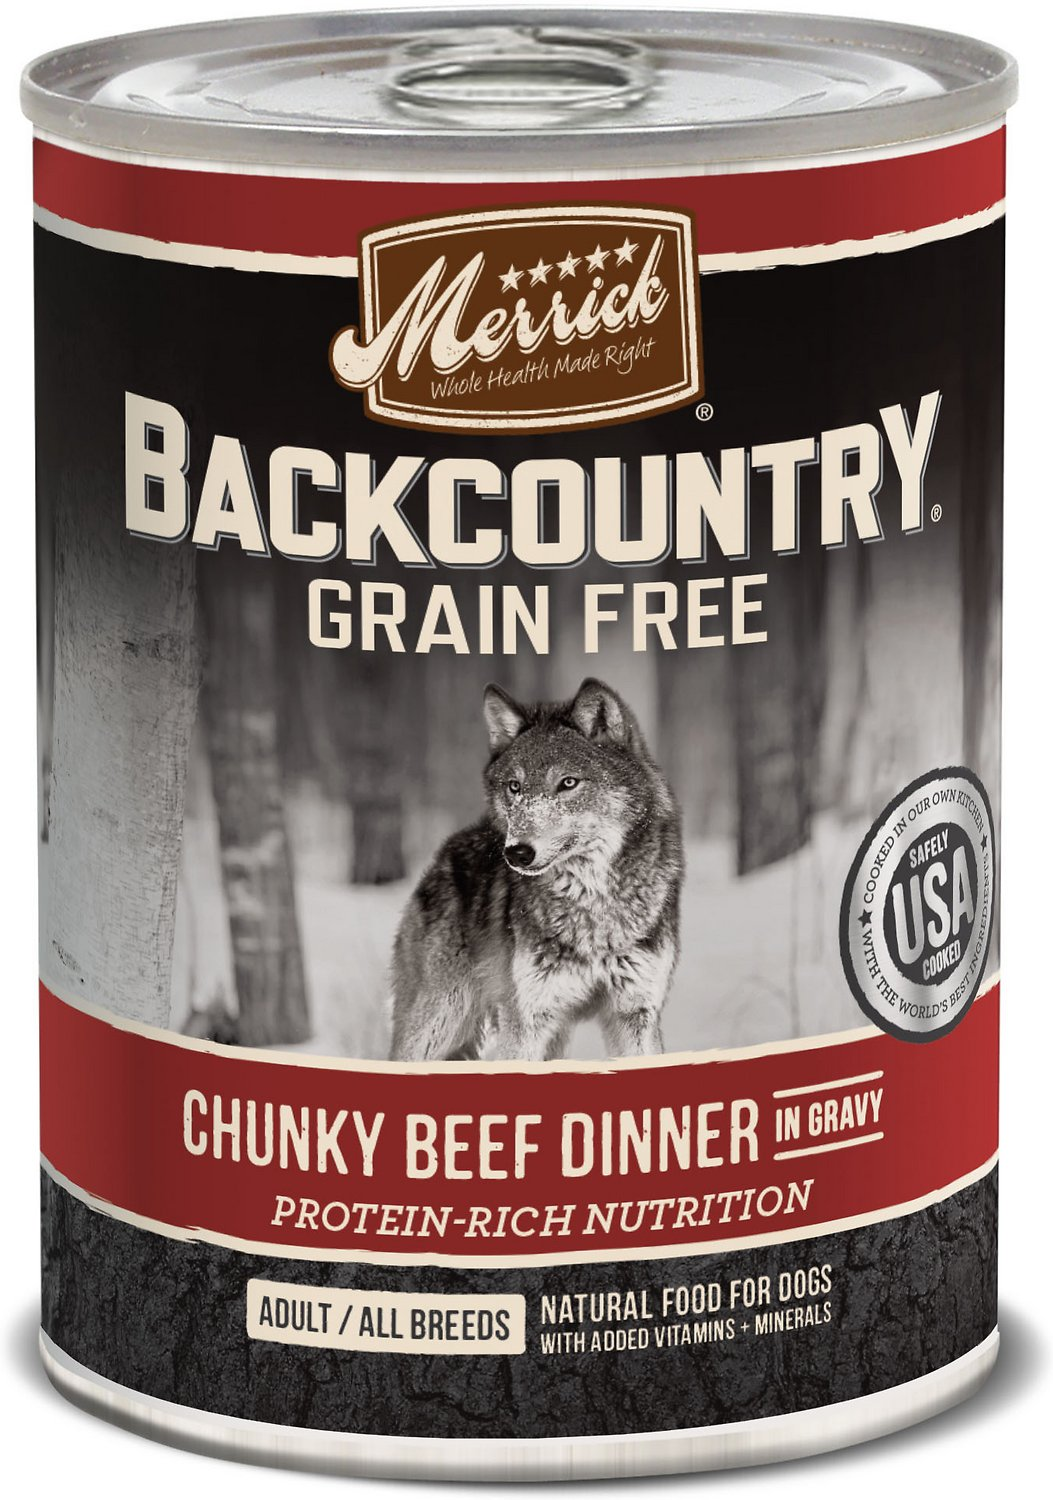 Merrick Backcountry Grain-Free Chunky Beef Dinner in Gravy Canned Dog Food, 12.7-oz